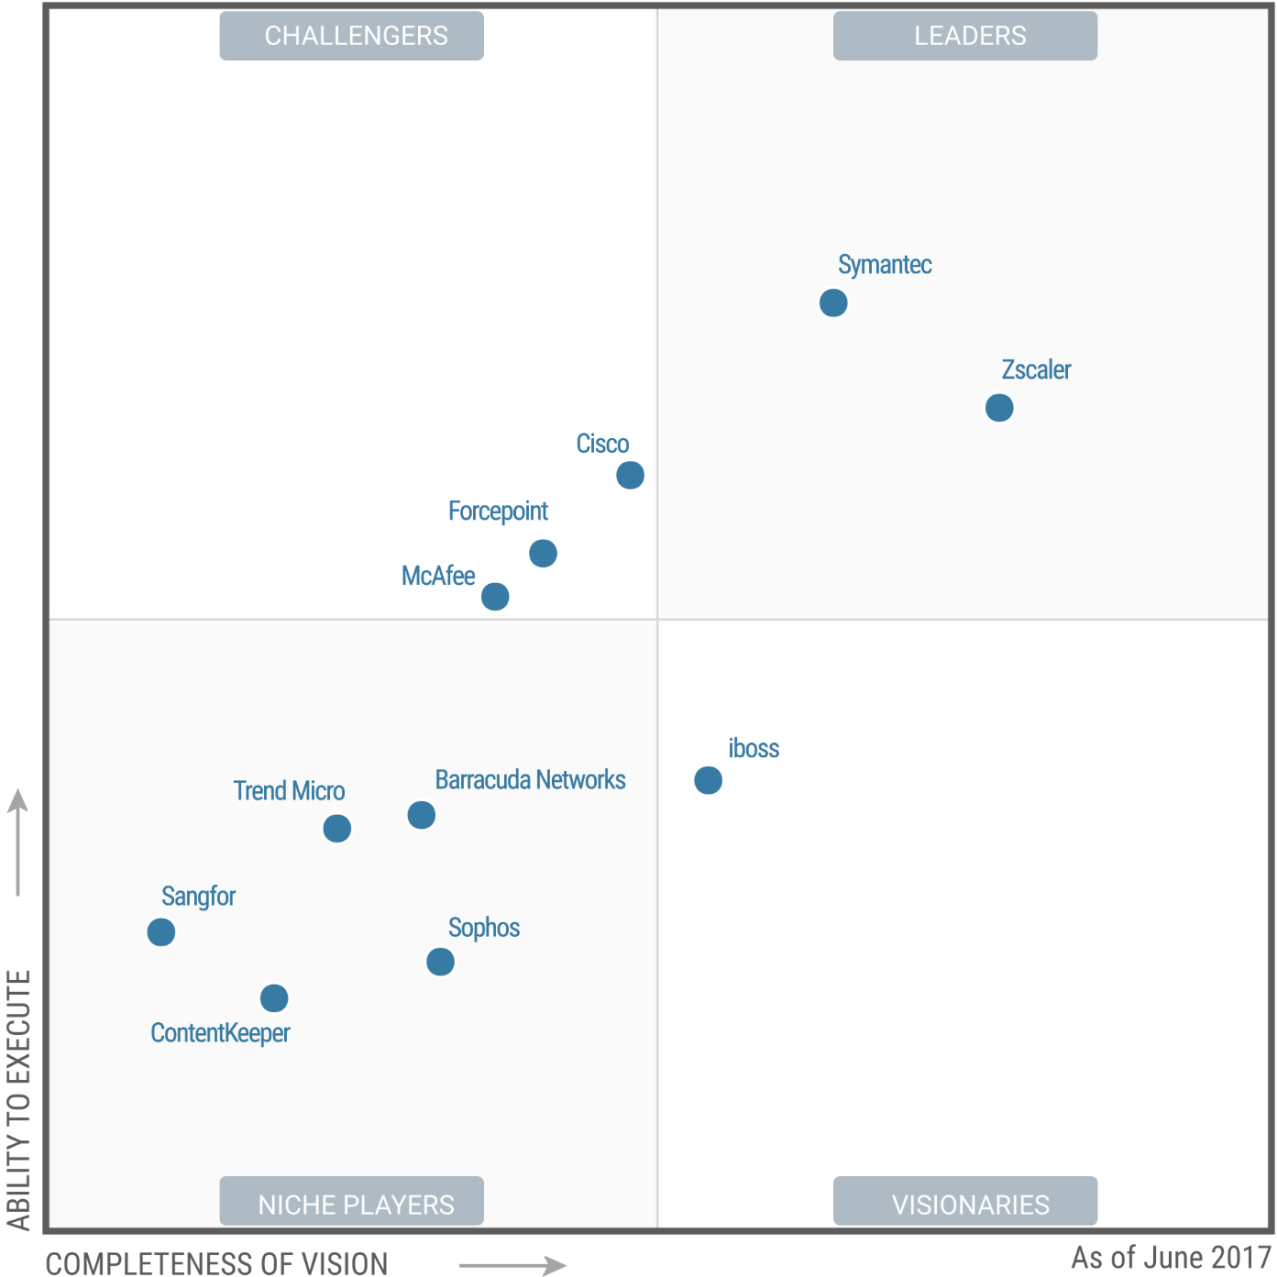 gartner magic quadrant utm 2017 pdf